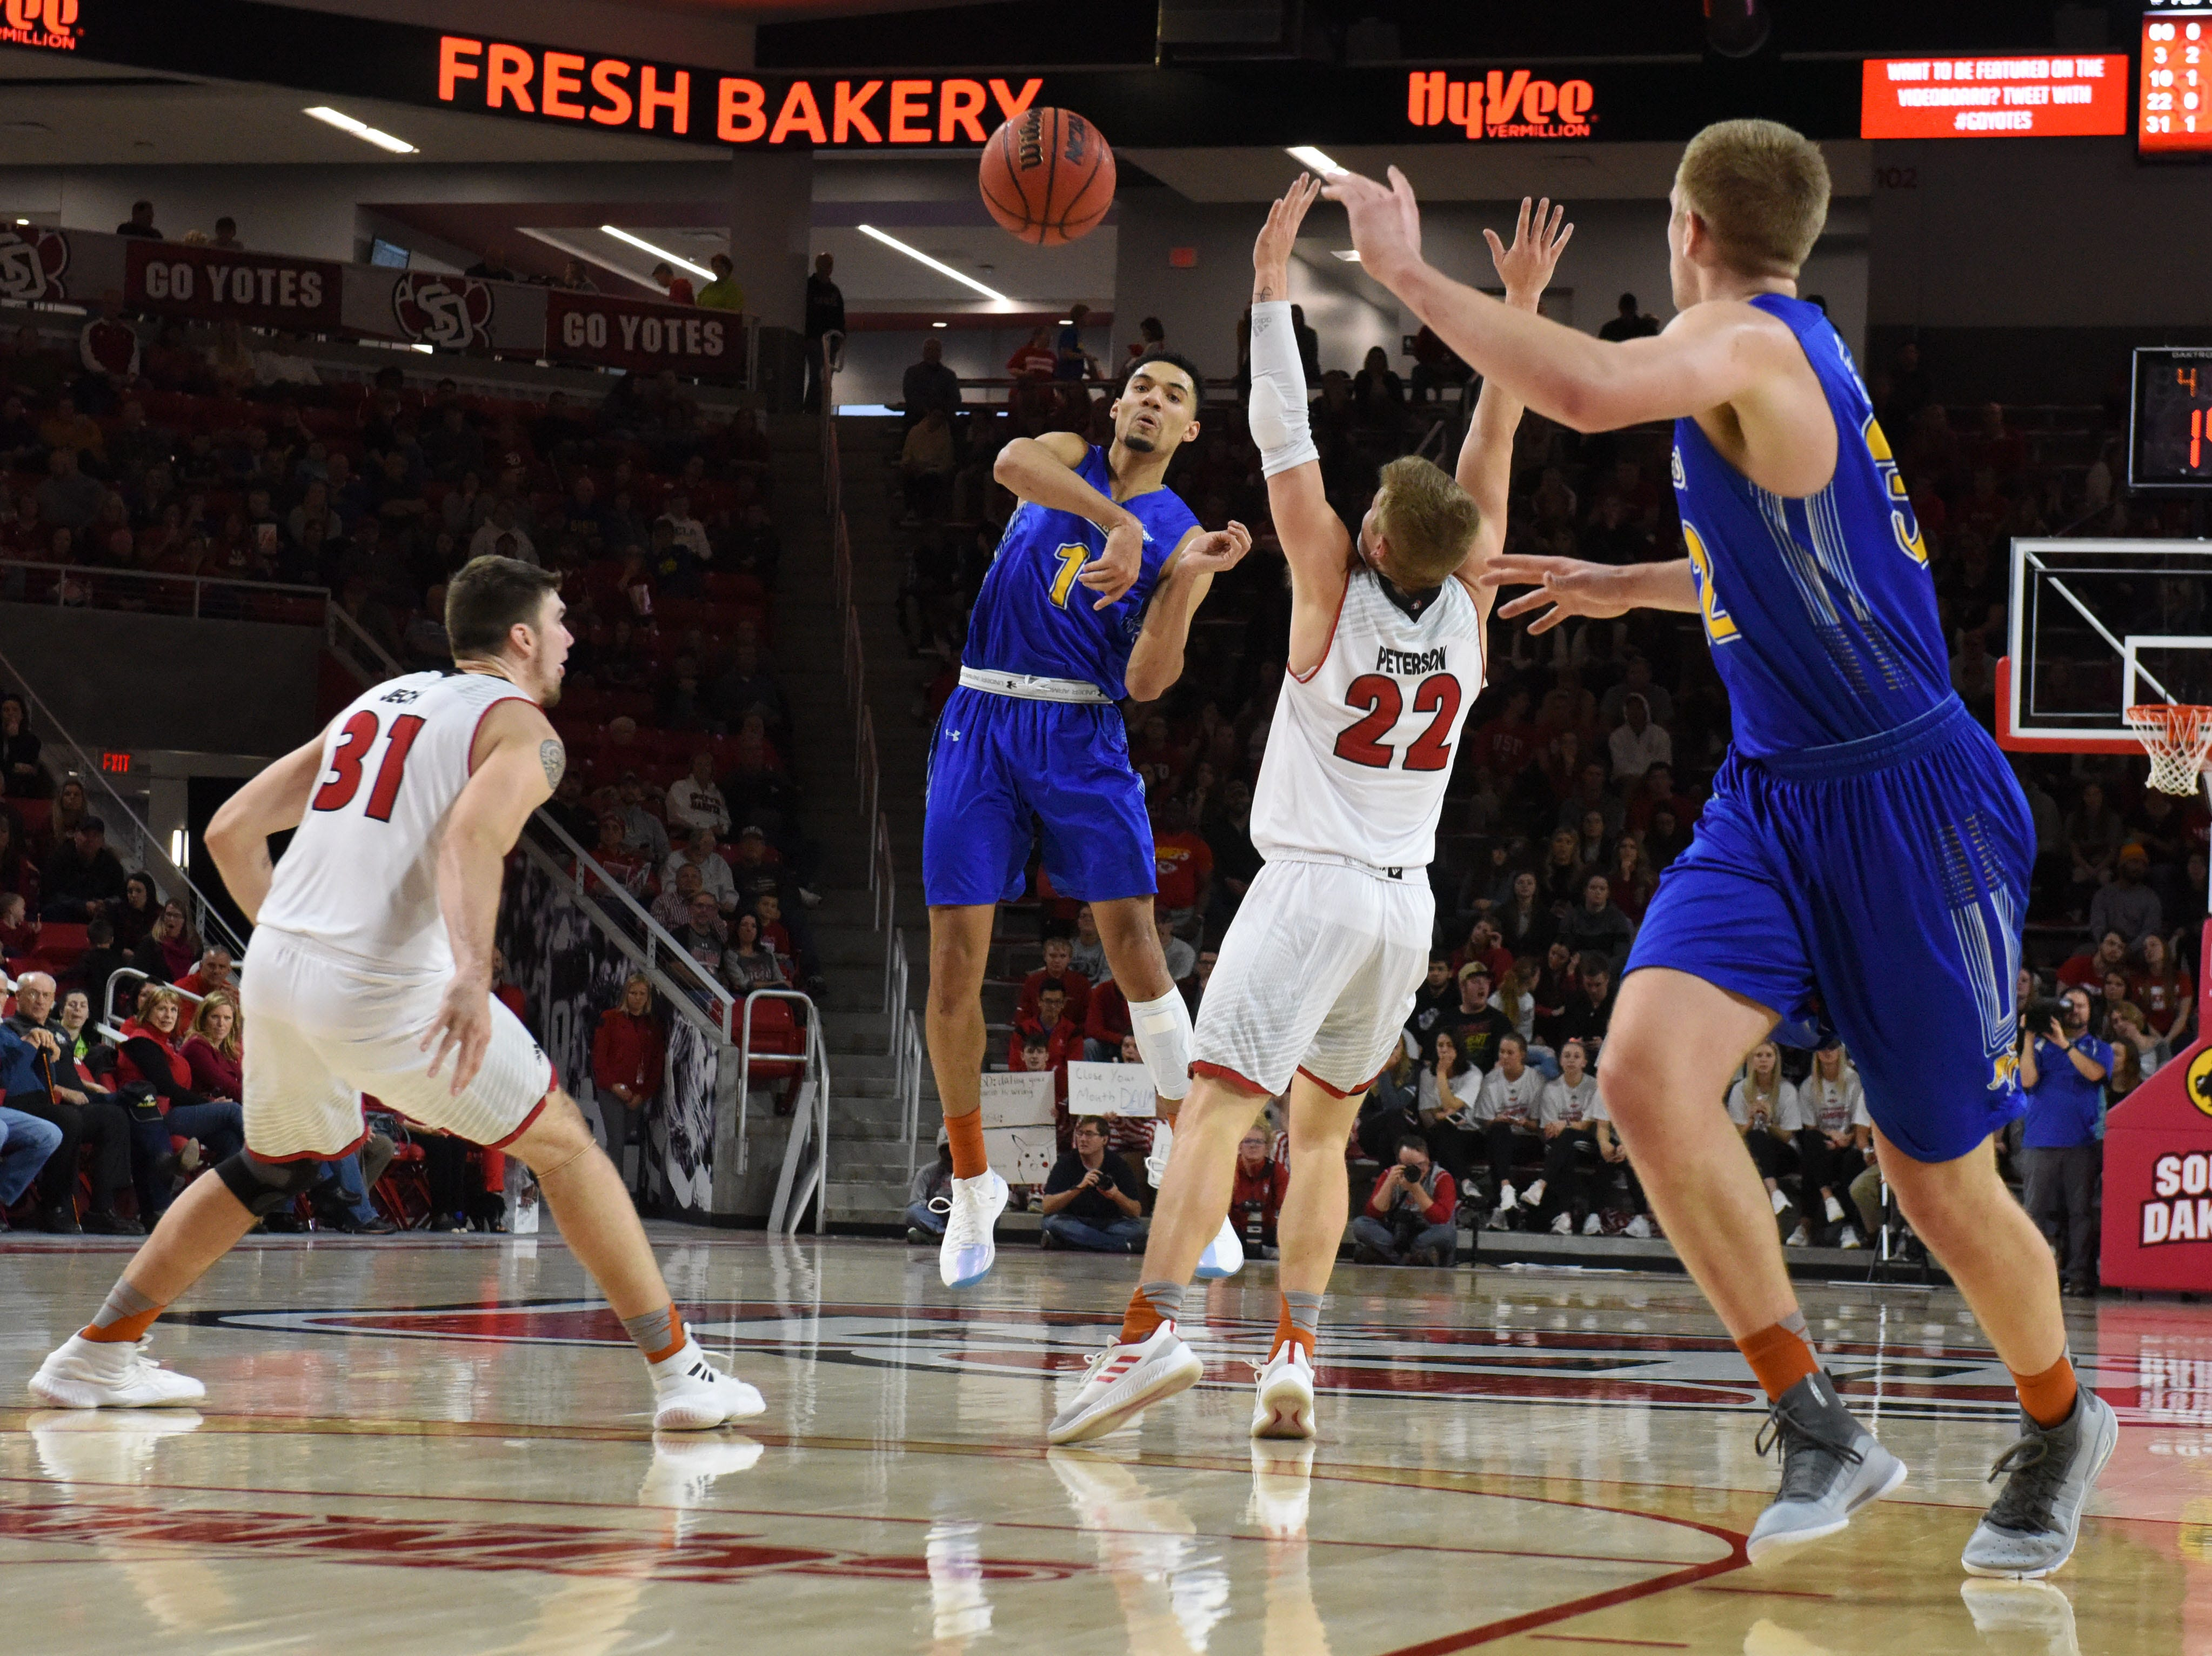 SDSU's Skyler Flatten (1) passes the ball during a game against USD, Sunday, Jan. 6, 2019 in Vermillion, S.D.